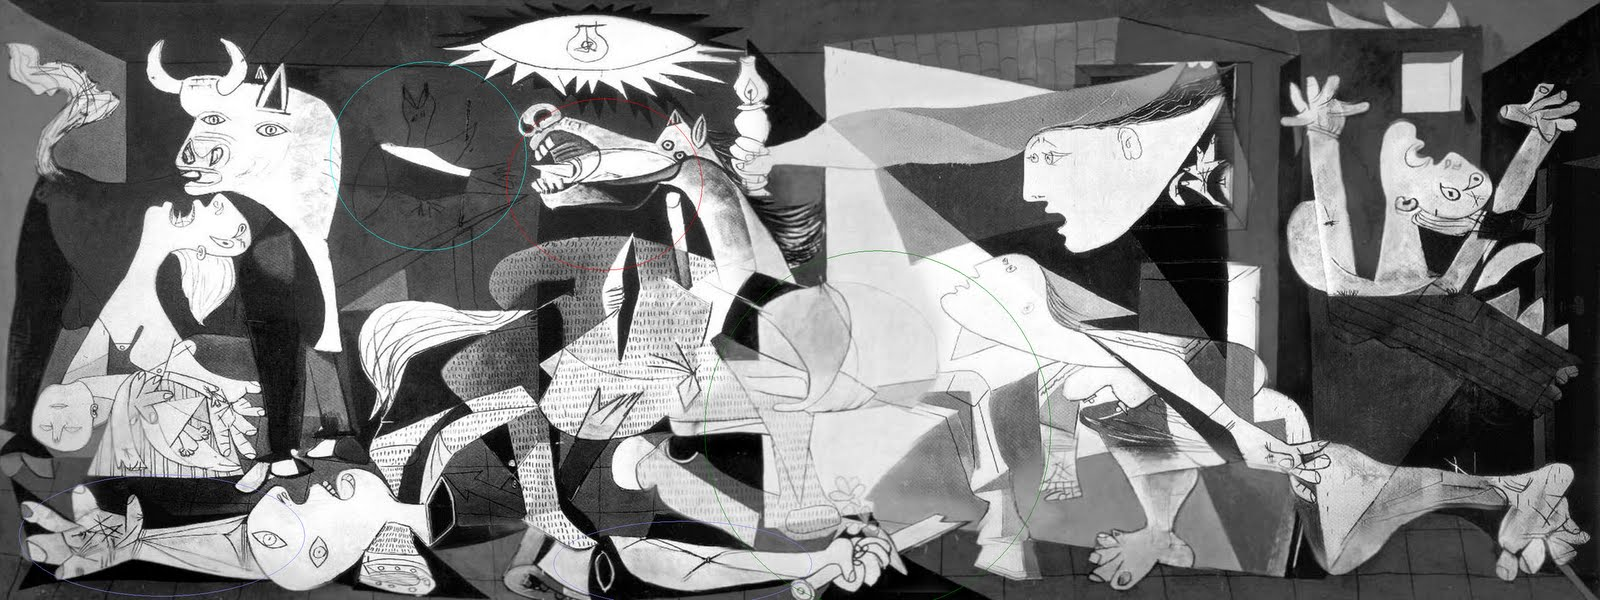 stmhumanities: Picasso's Guernica